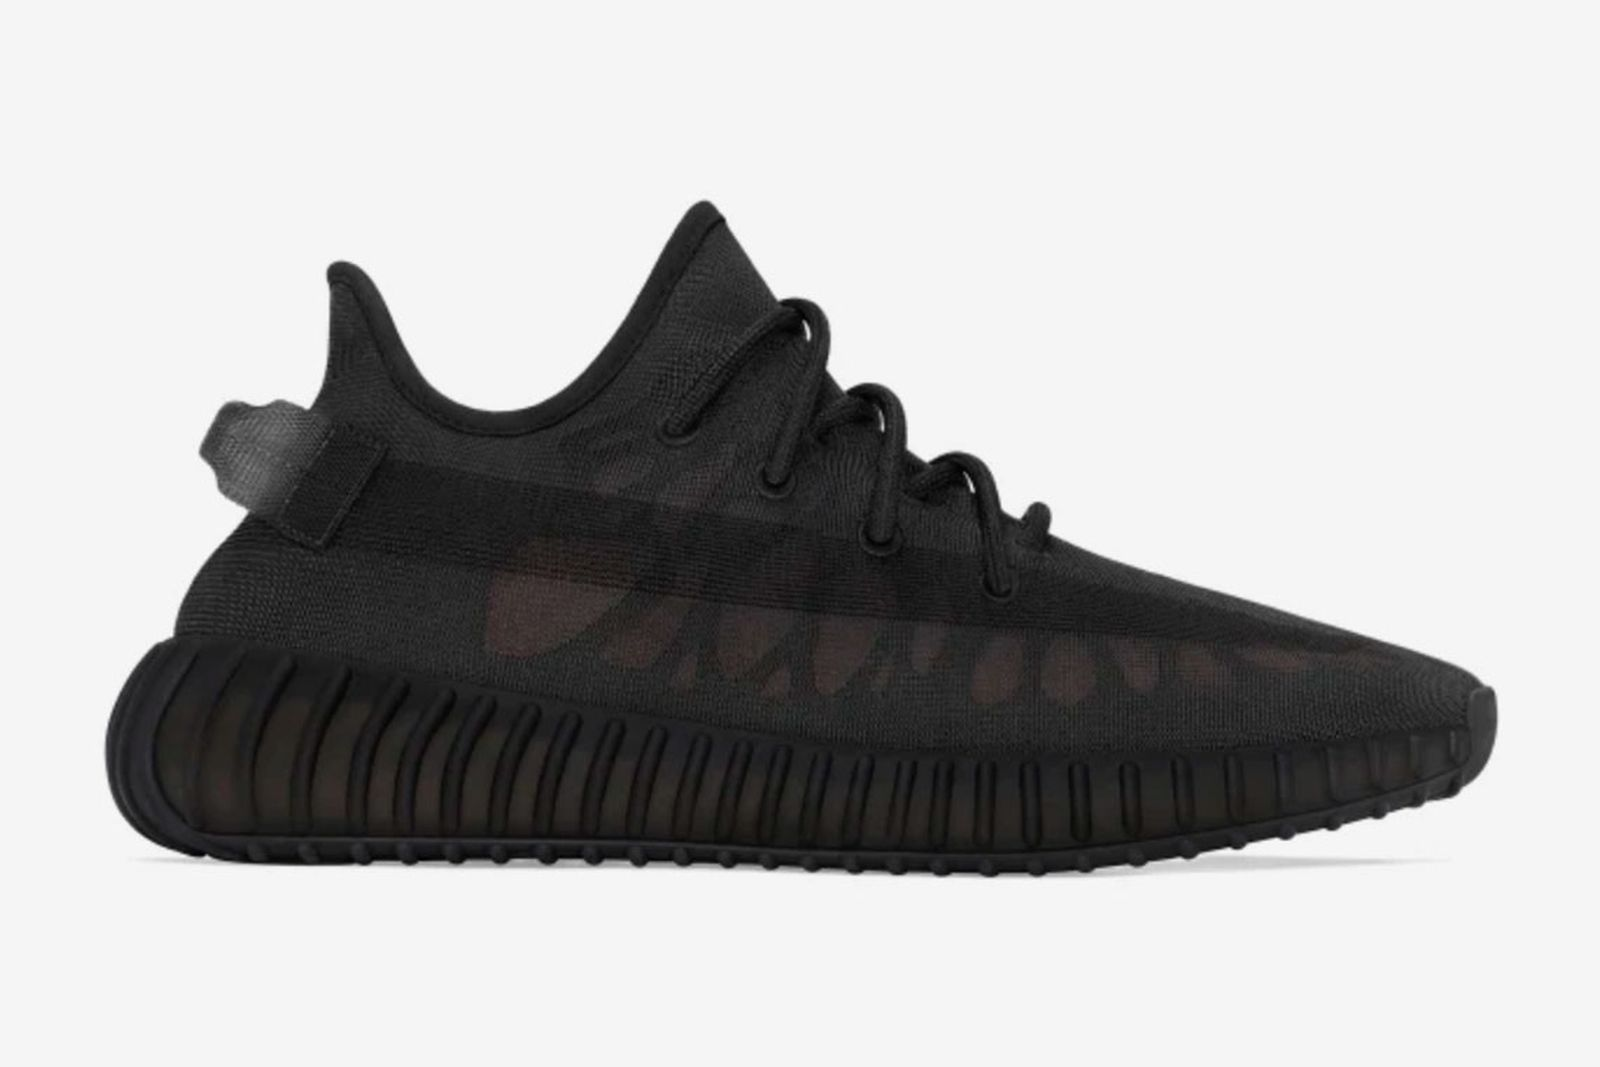 adidas-yeezy-spring-summer-2021-releases-100